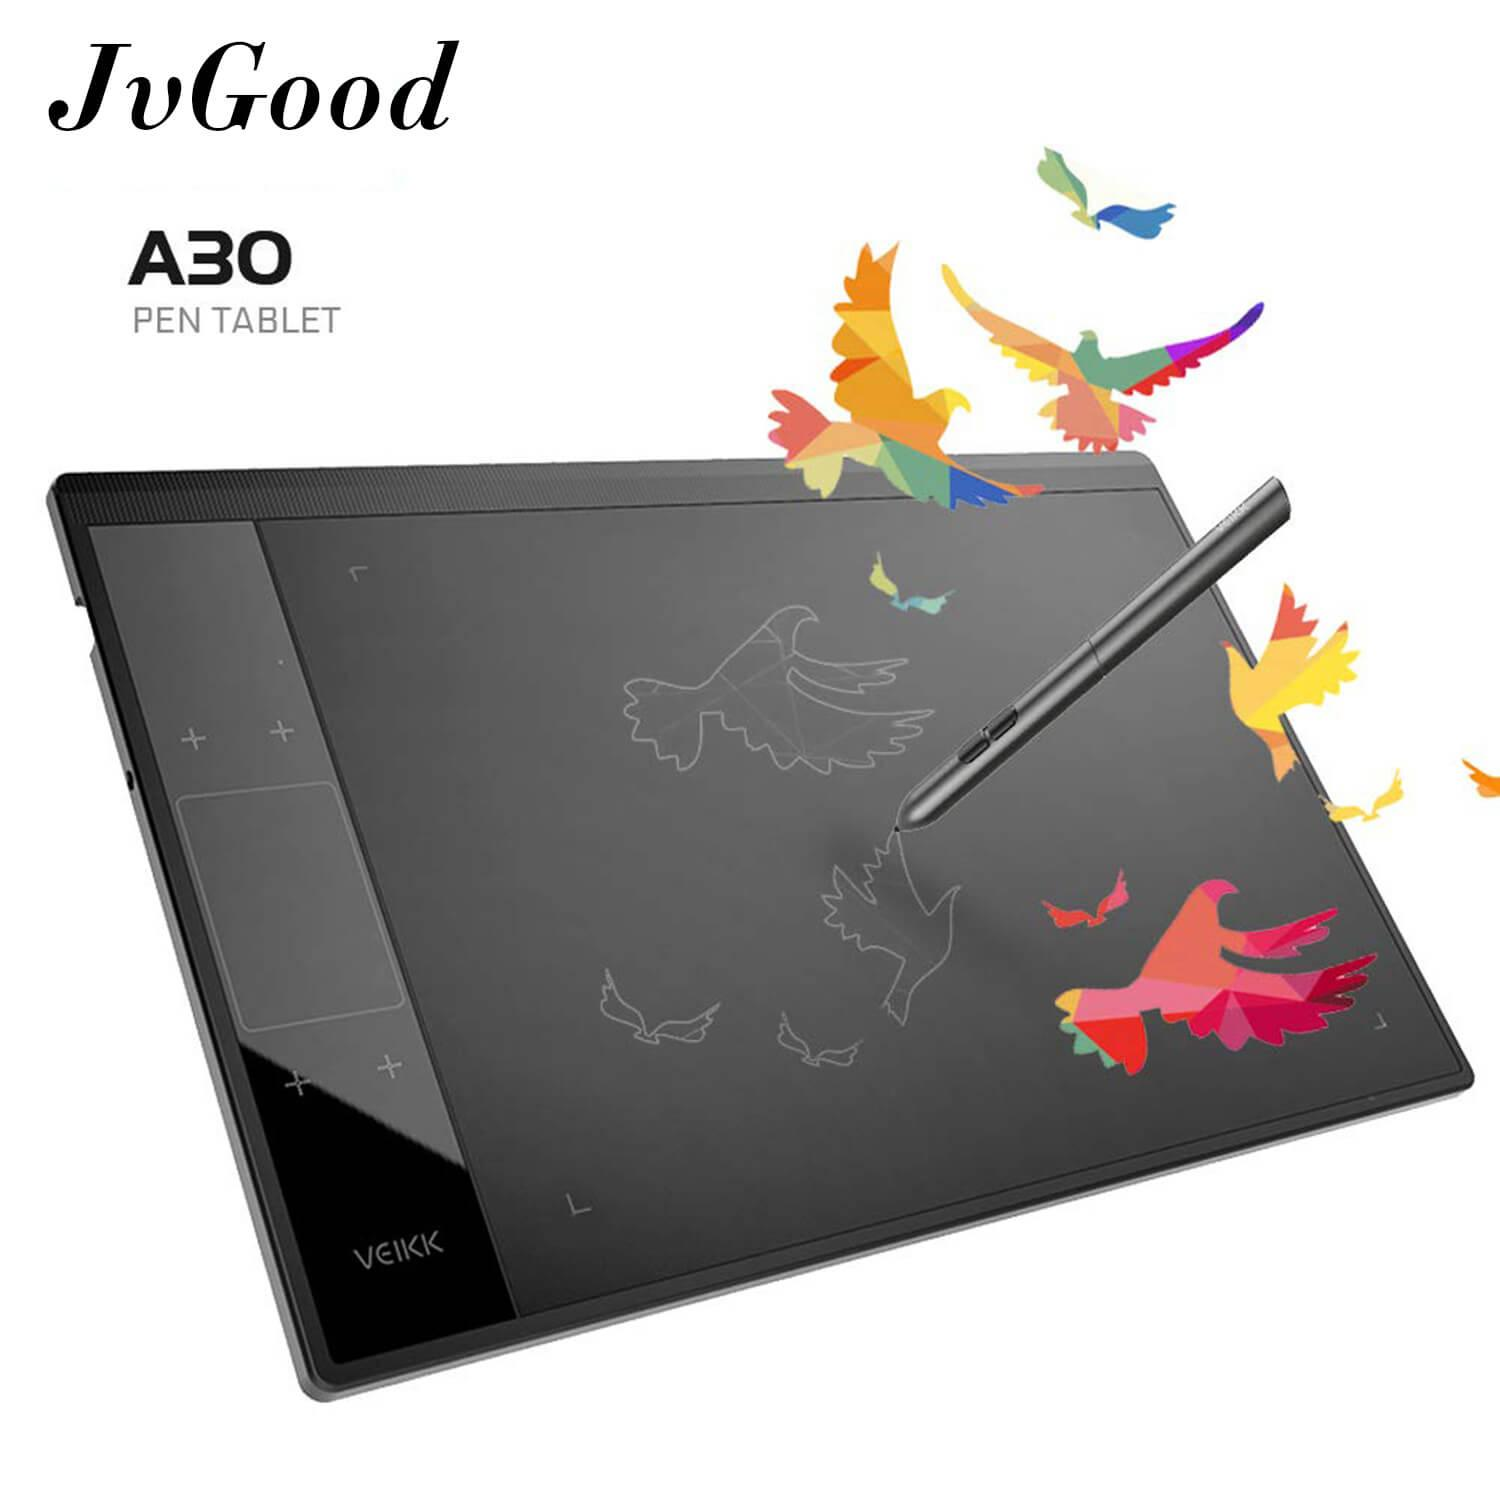 Computer Drawing Pad For Sale Pc Prices Brands Keyboard Diagram Kids Cabinet Block Jvgood Graphics Tablet Board Digital Pen With No Charging 8192